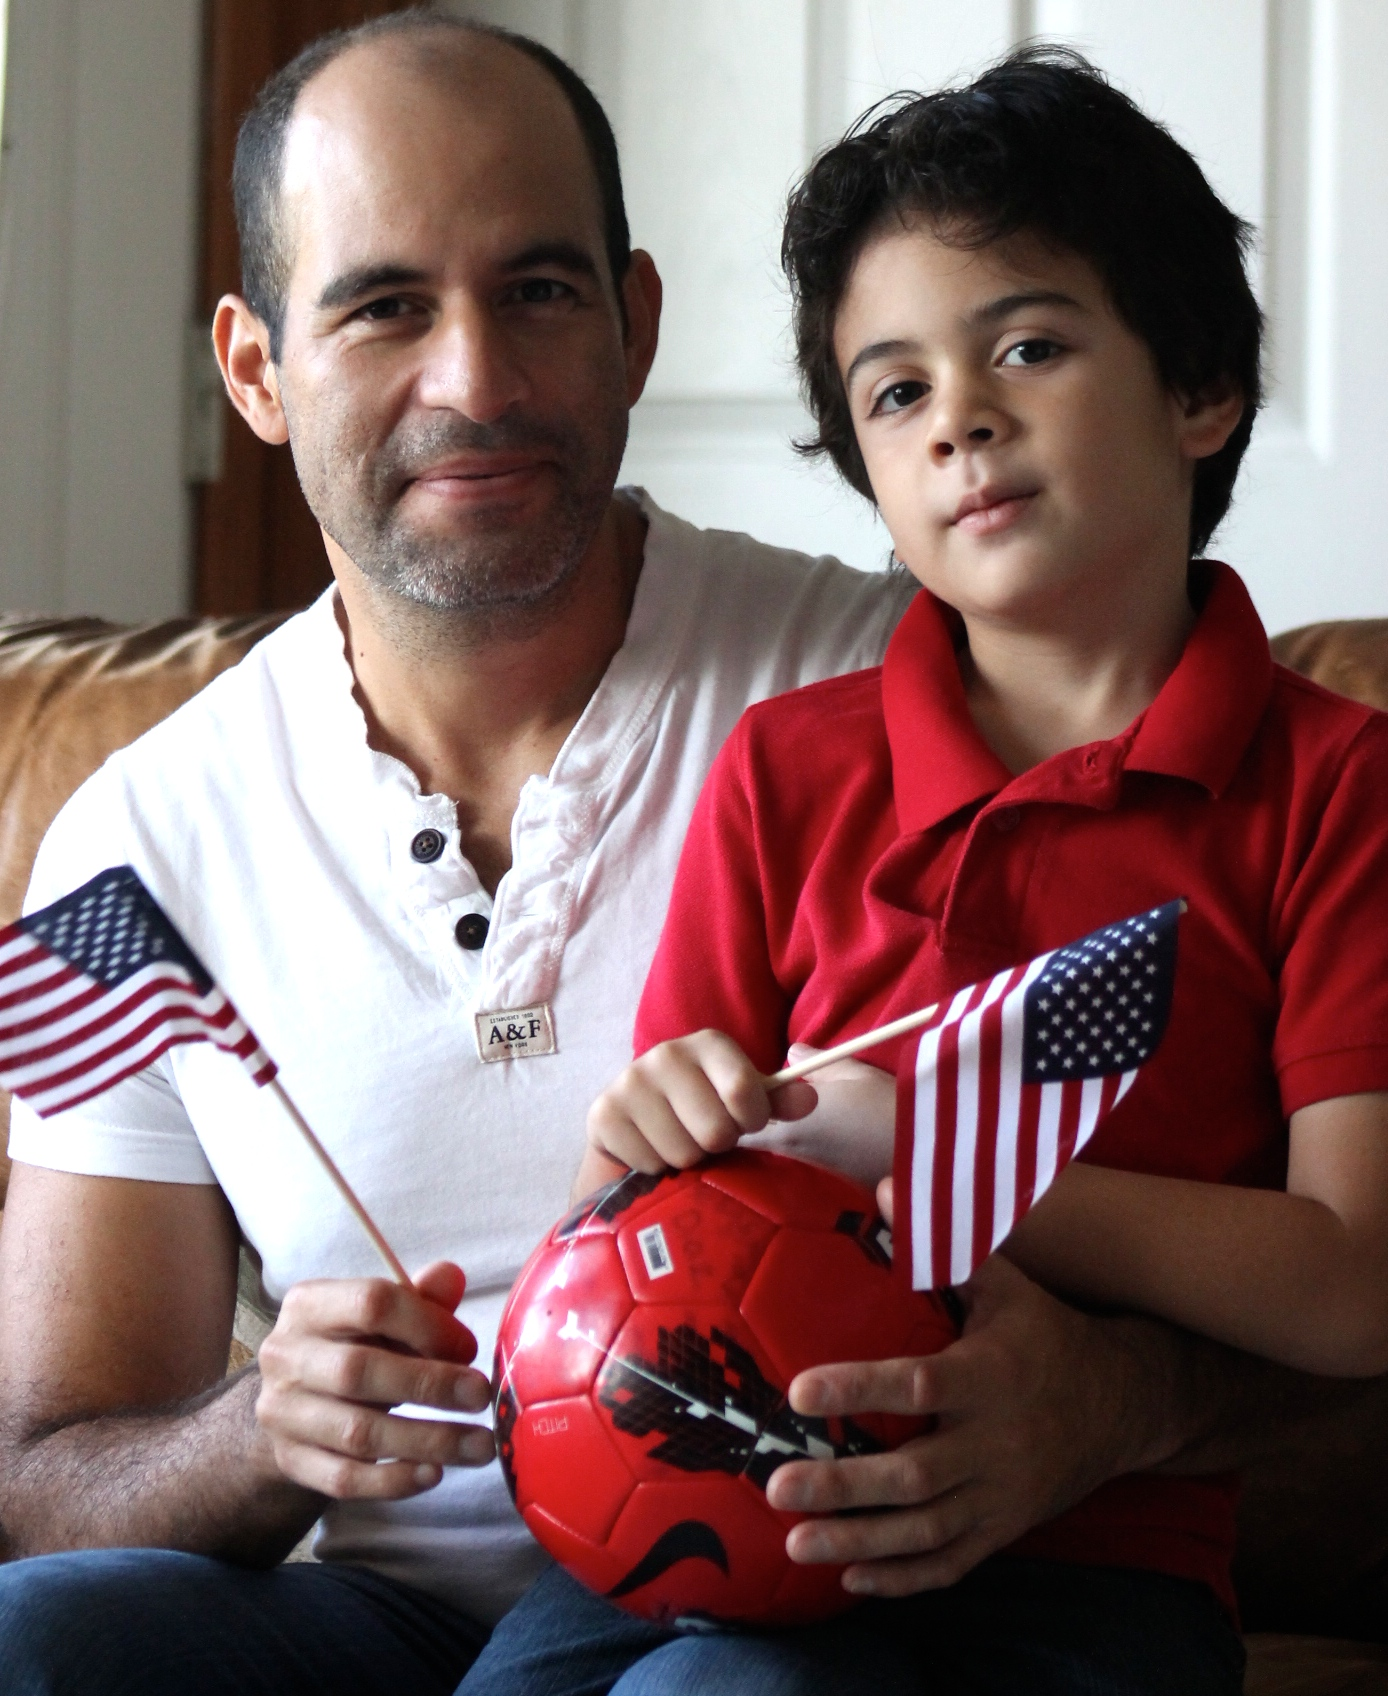 soccer Hispanic Latino boy and father USA